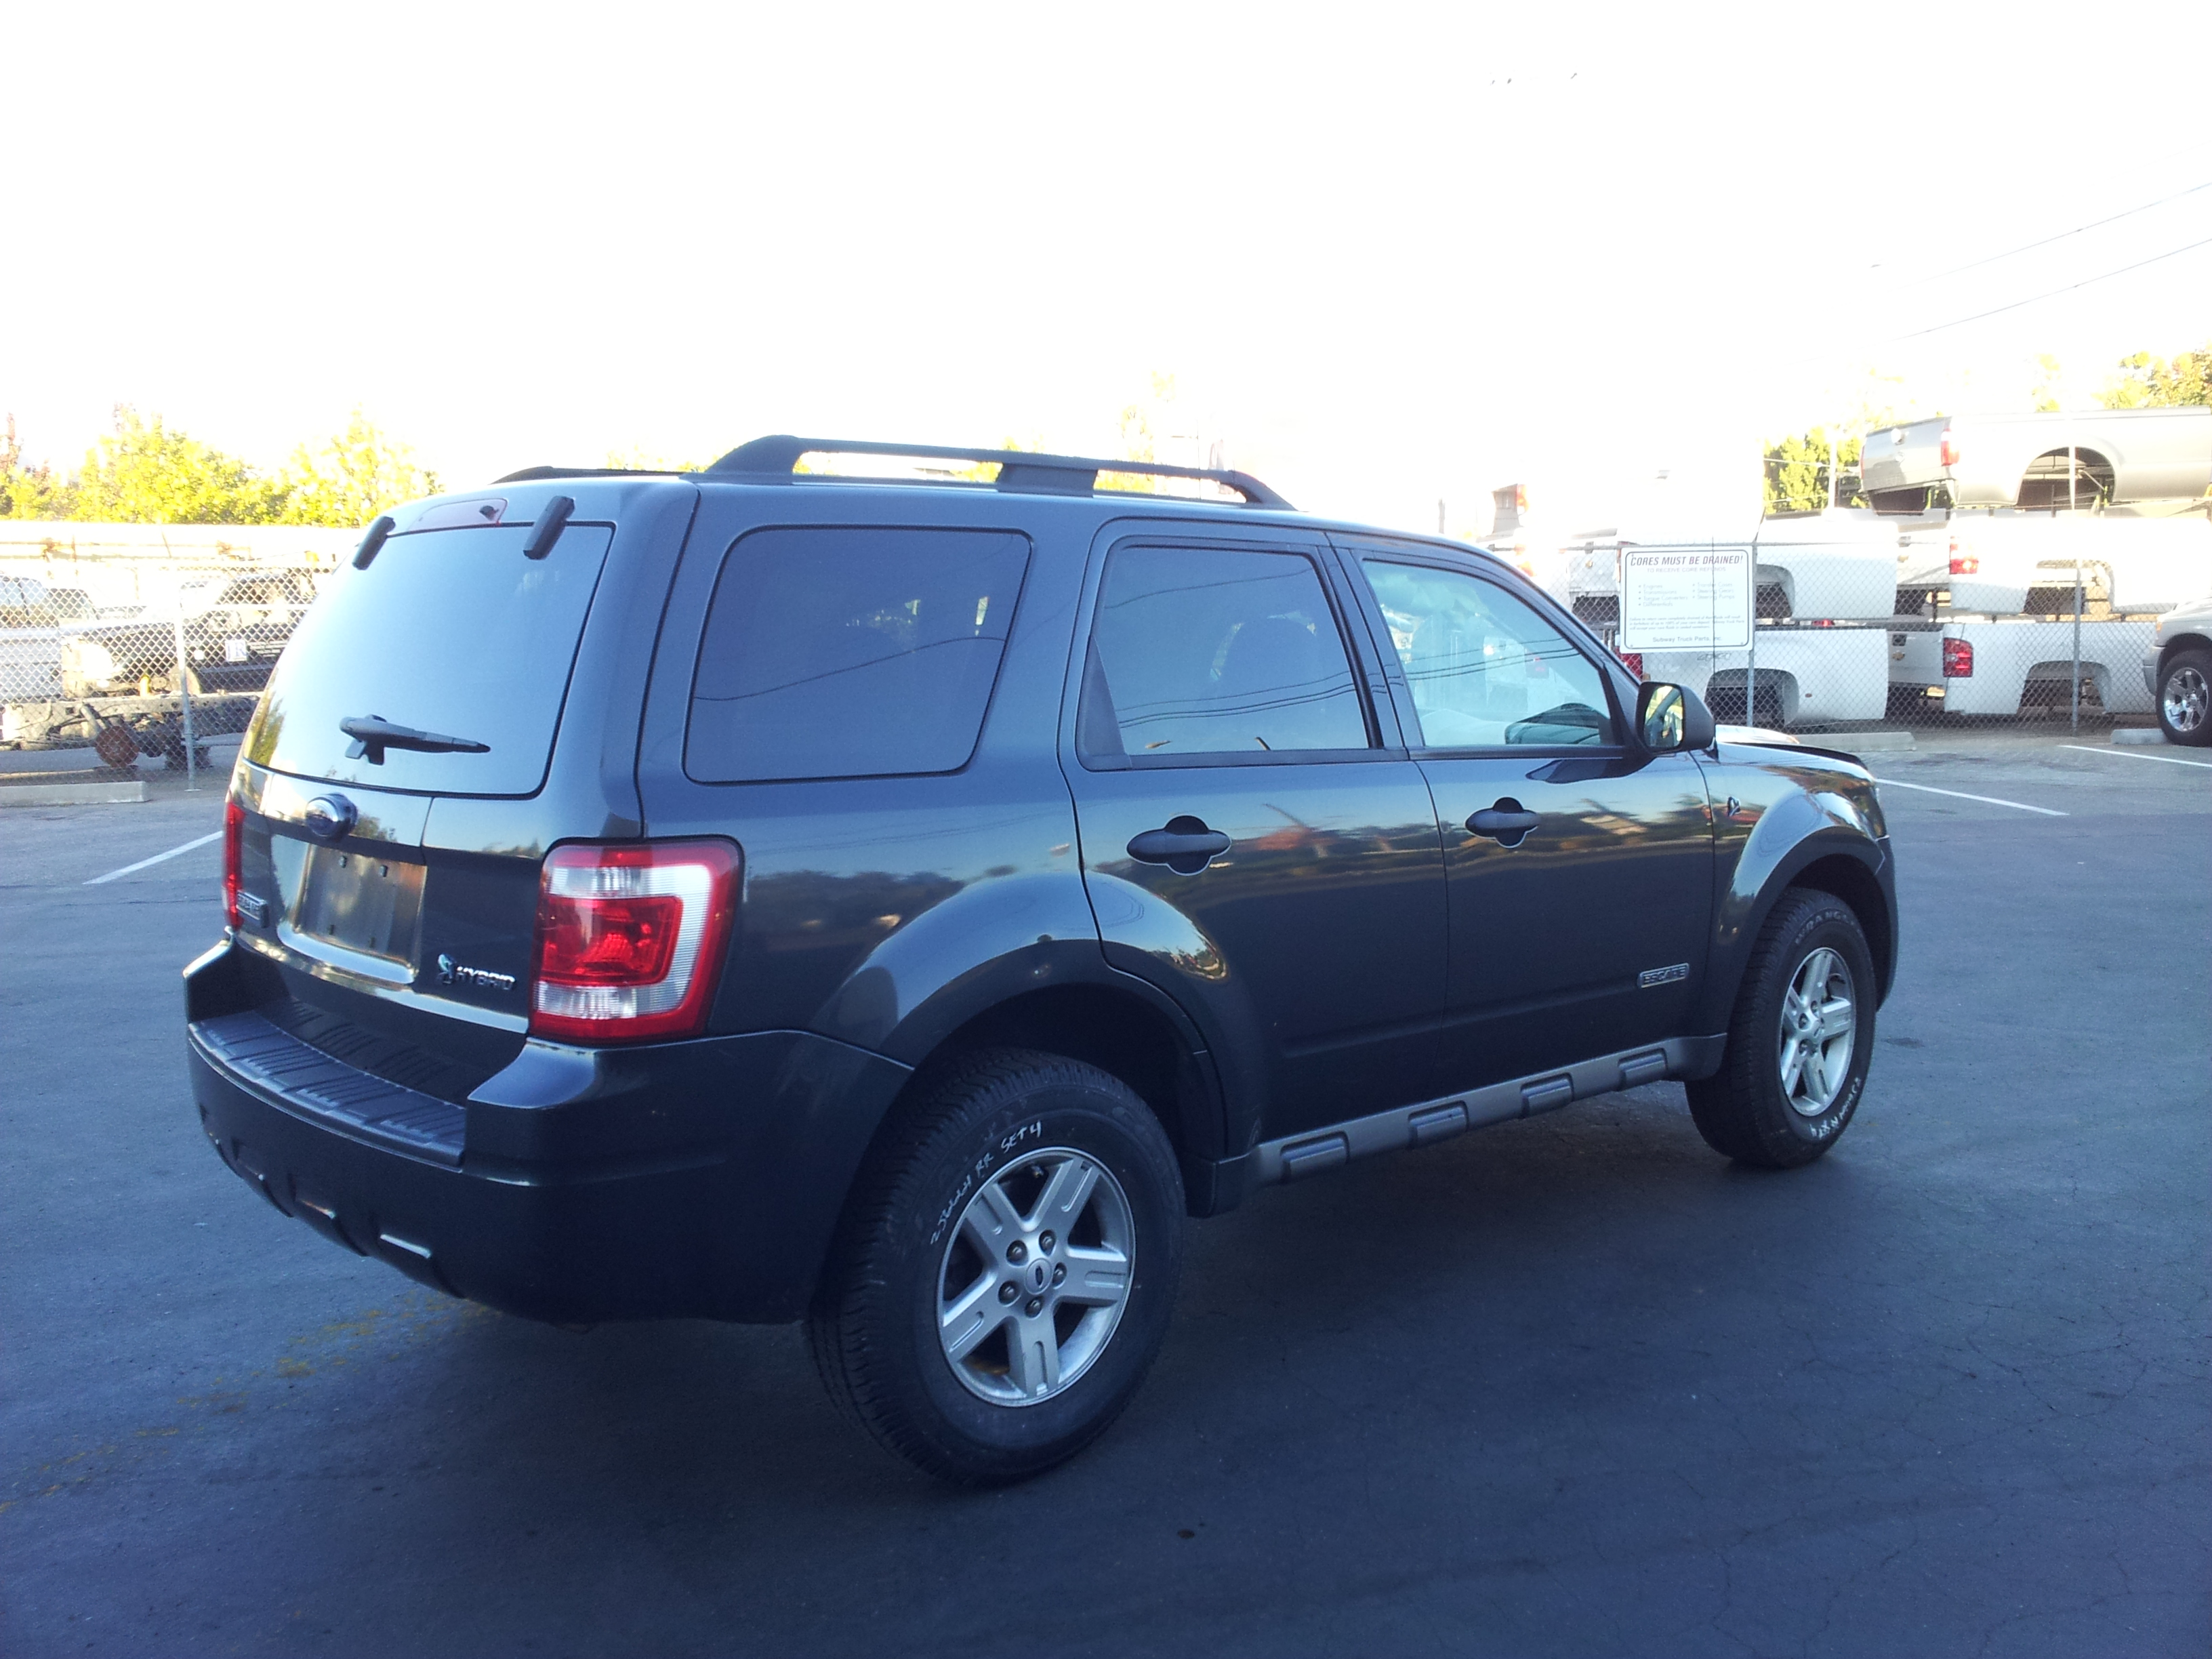 2008 Ford Escape Hybrid 2.3L Auto - Used Ford Escape ...